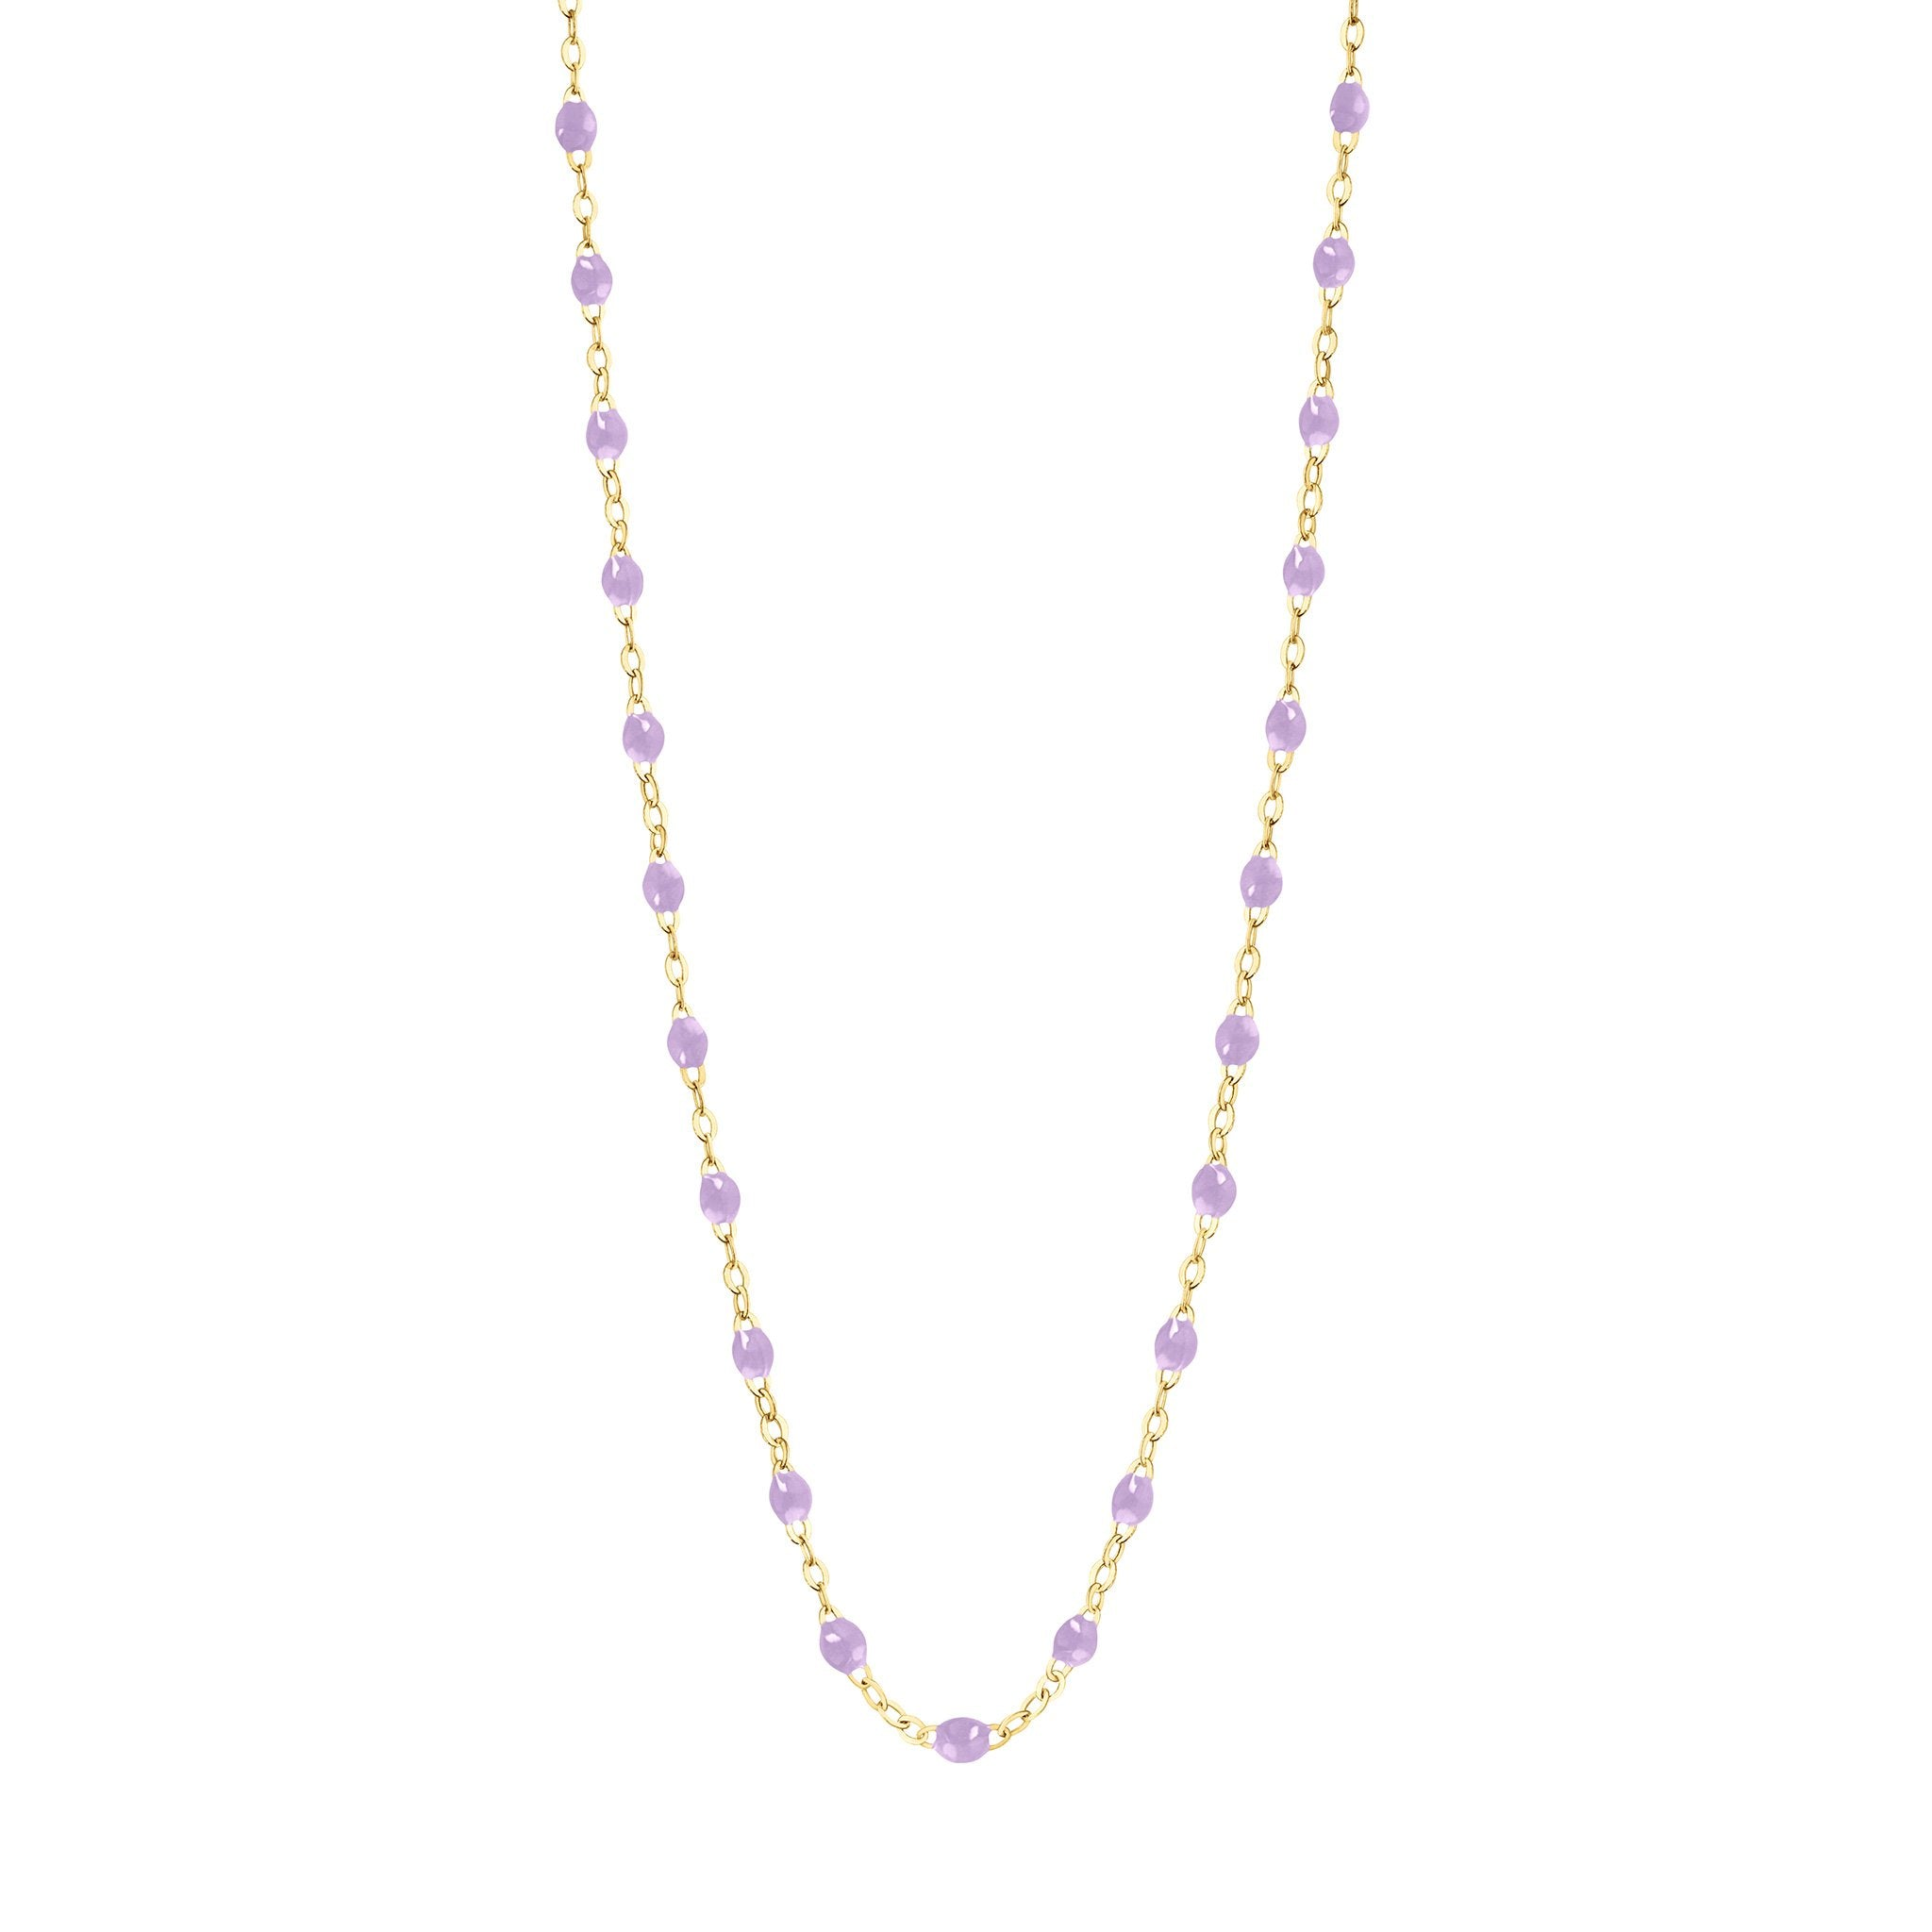 Gigi Clozeau - Classic Gigi Lilac necklace, Yellow Gold, 19.7